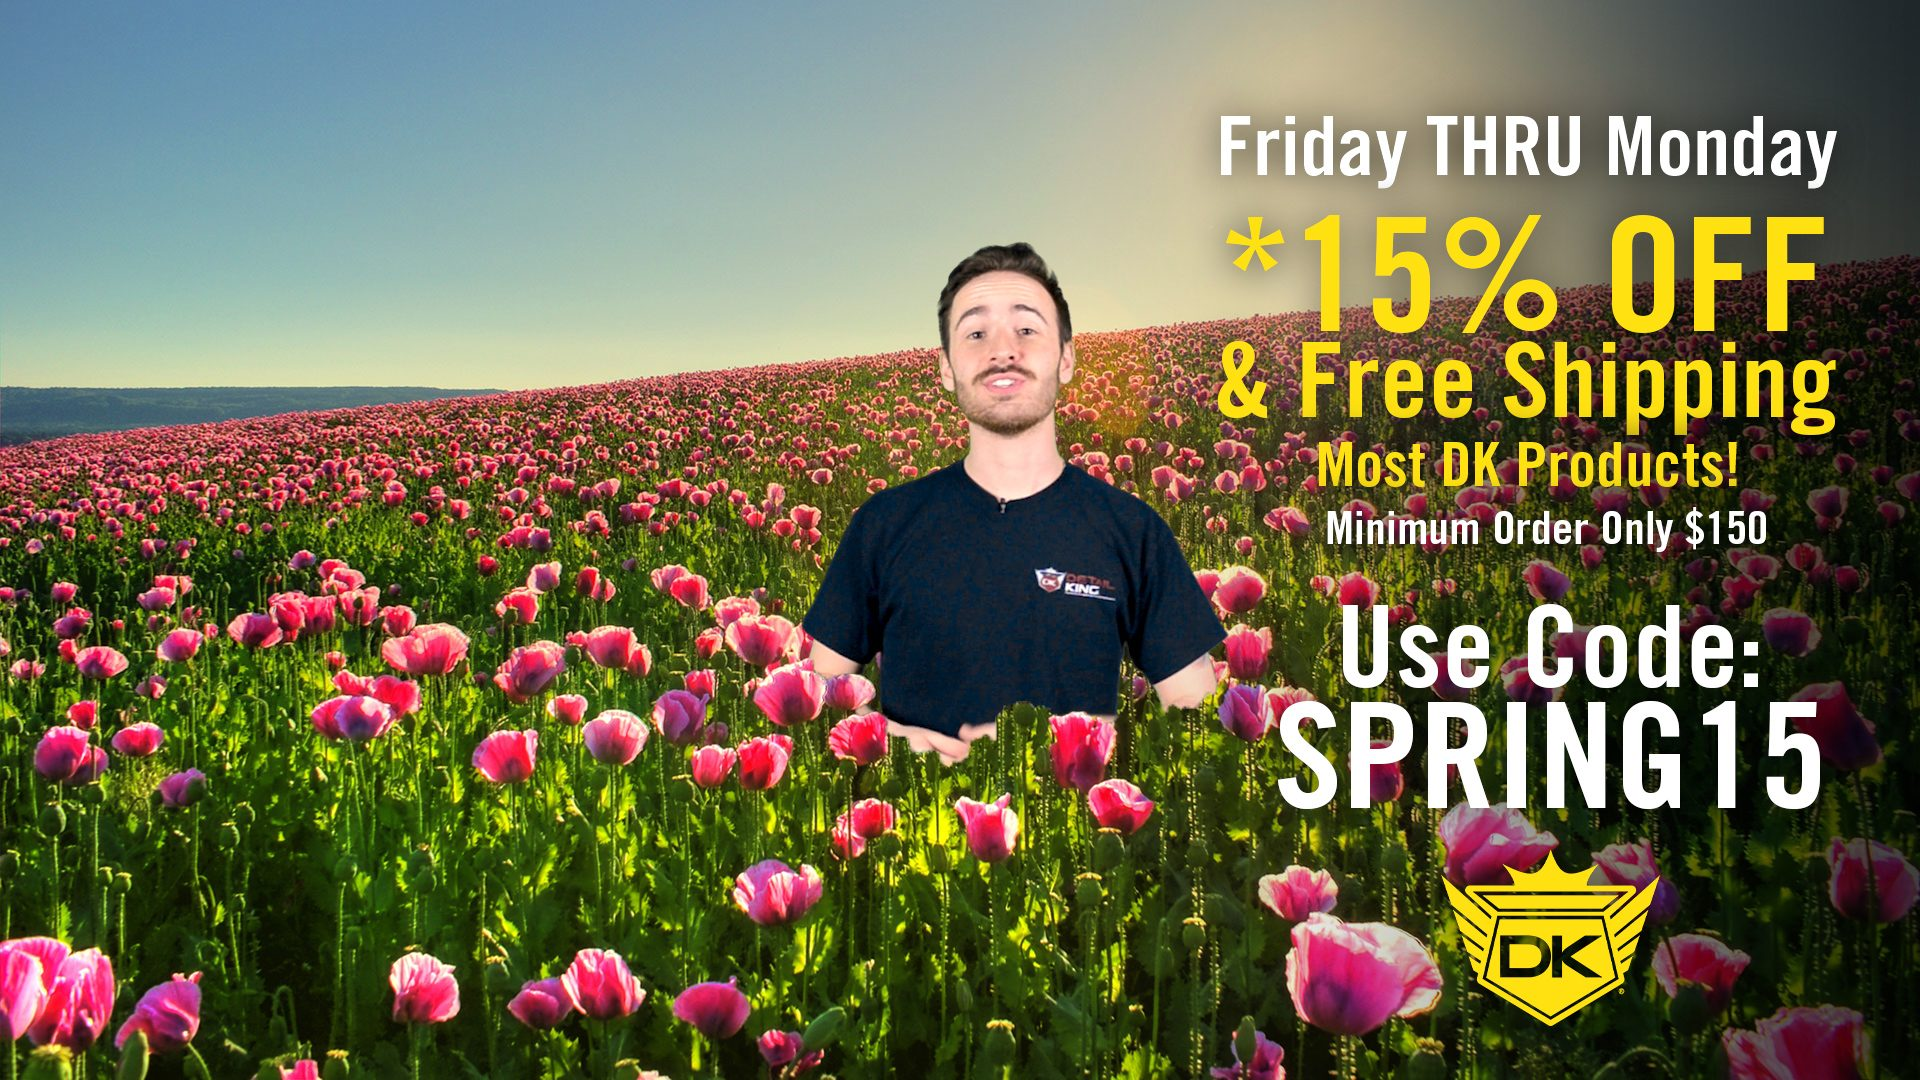 Spring Has Sprung Sale! – *15% Off & Free Shipping on Most DK Products!